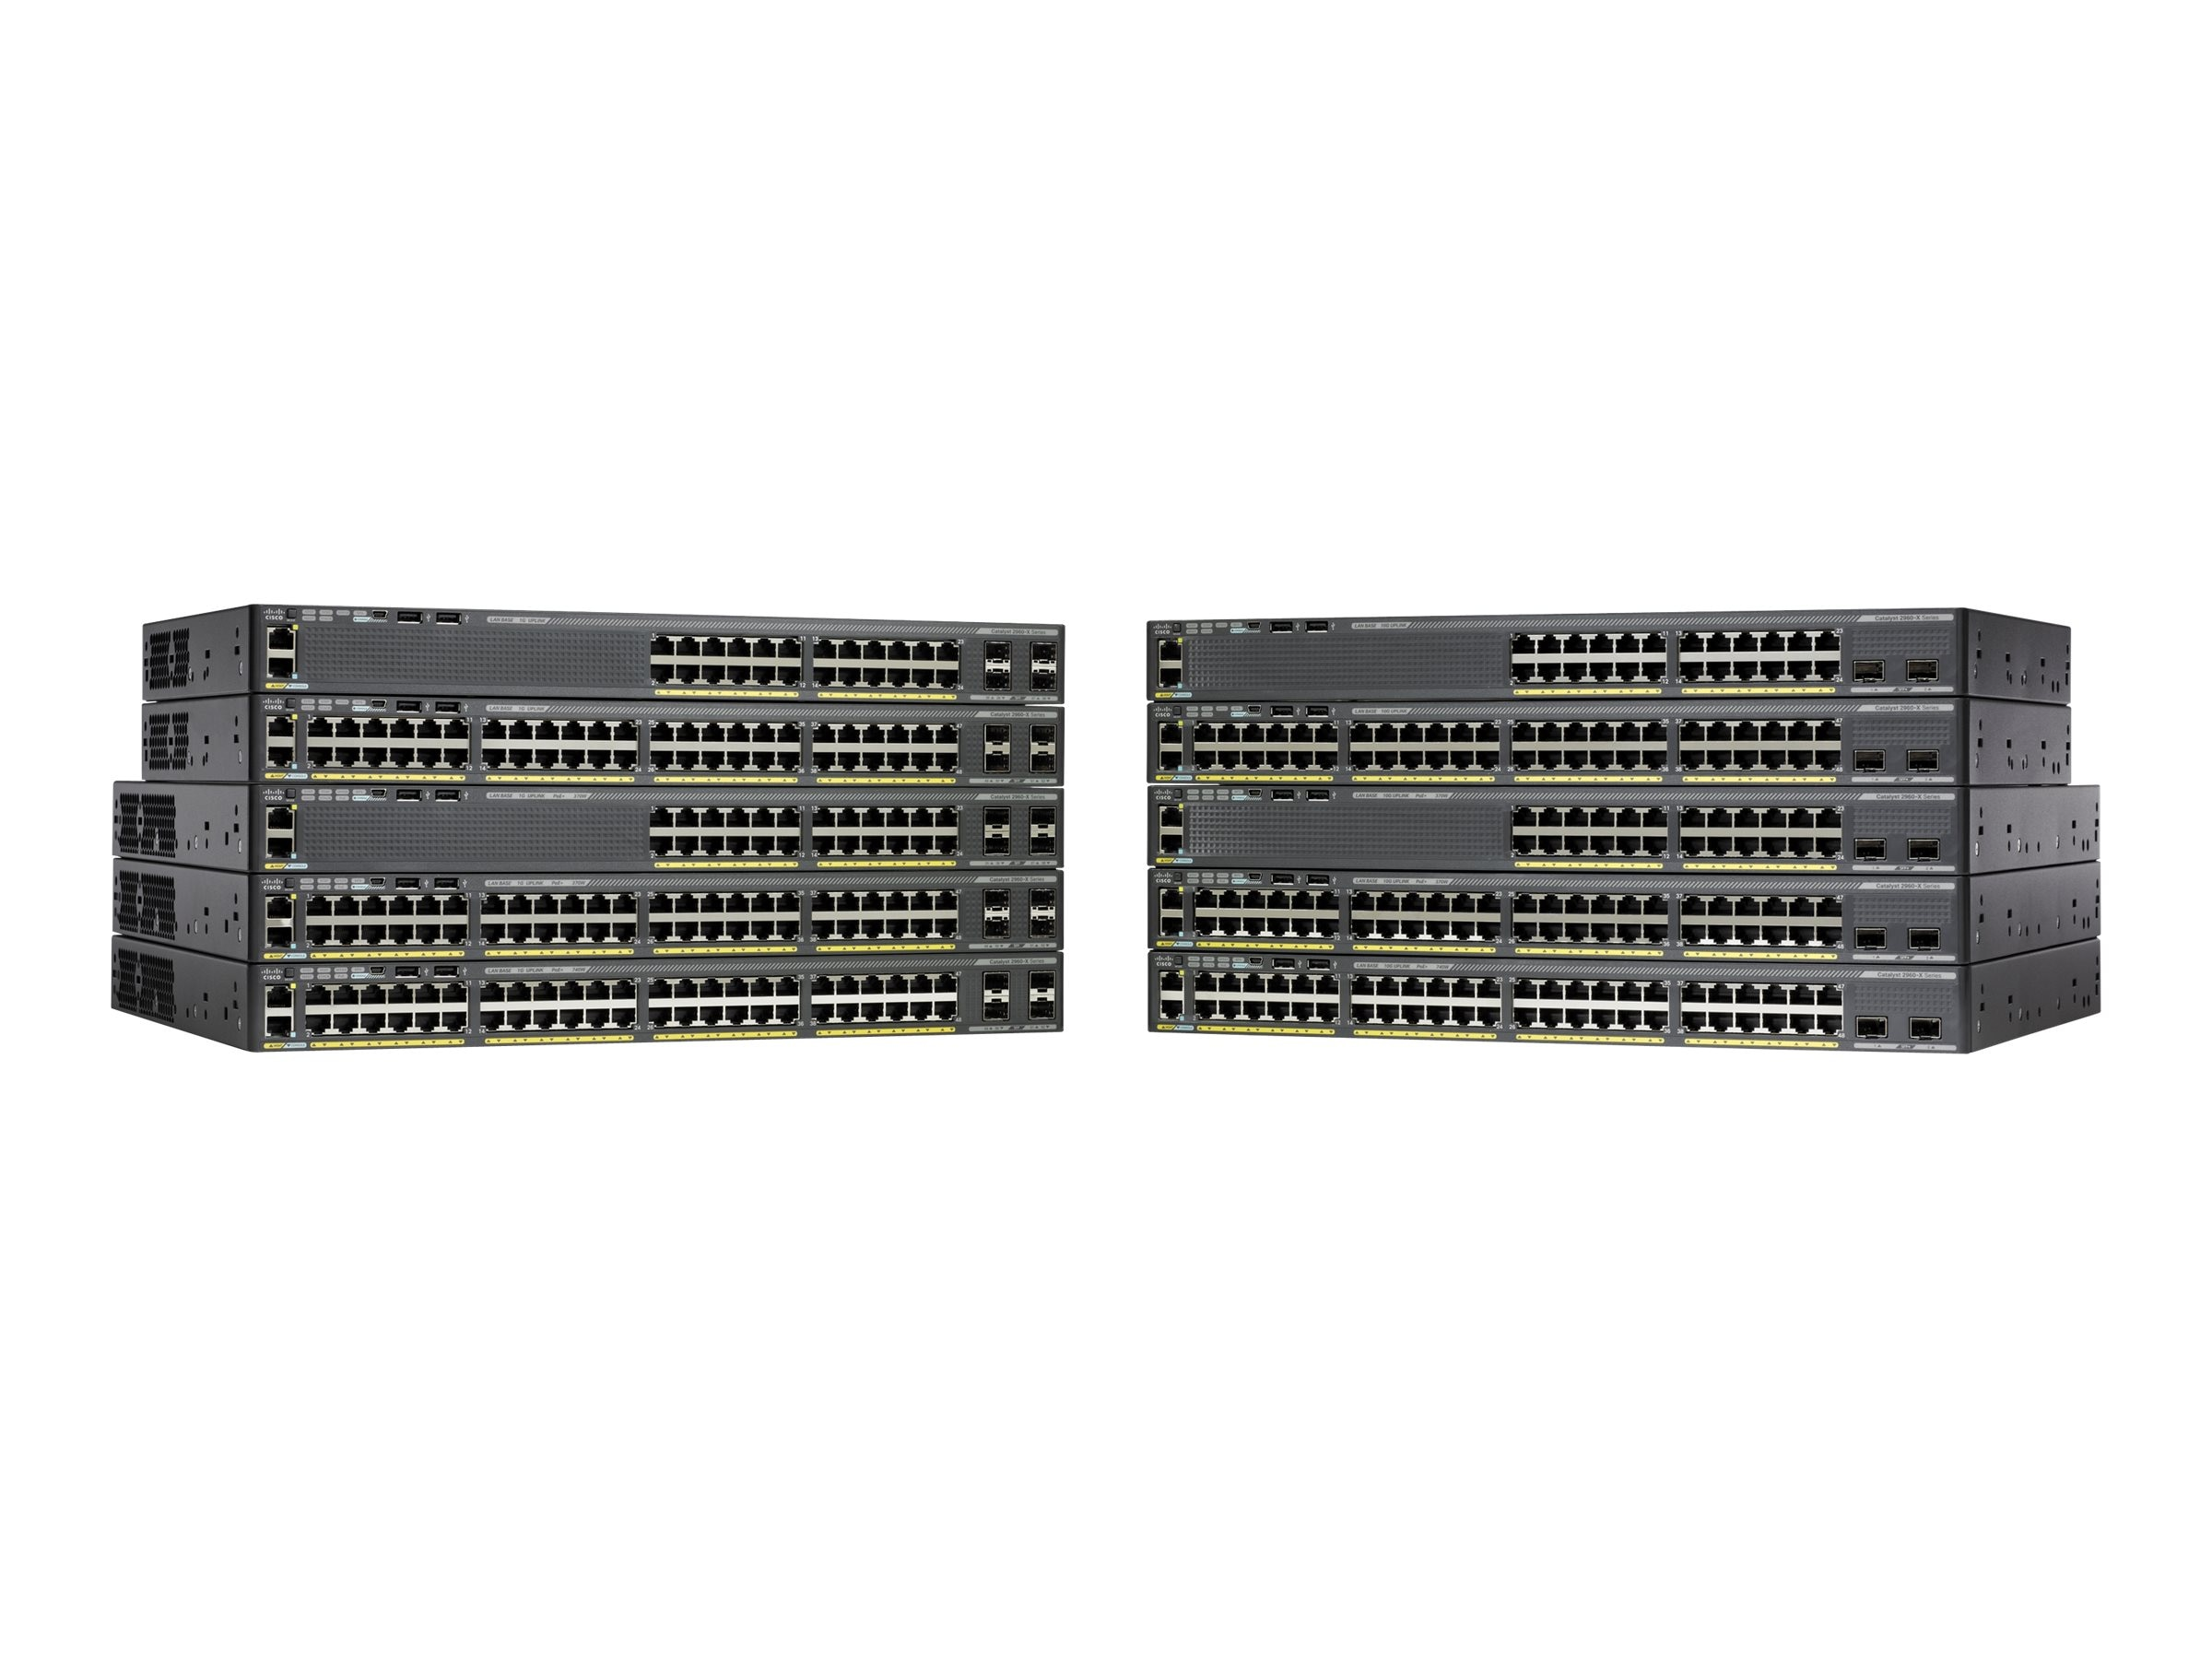 Cisco Catalyst 2960-X 24 GIGE 4X SFP LAN, WS-C2960X-24TS-L, 15954704, Network Switches